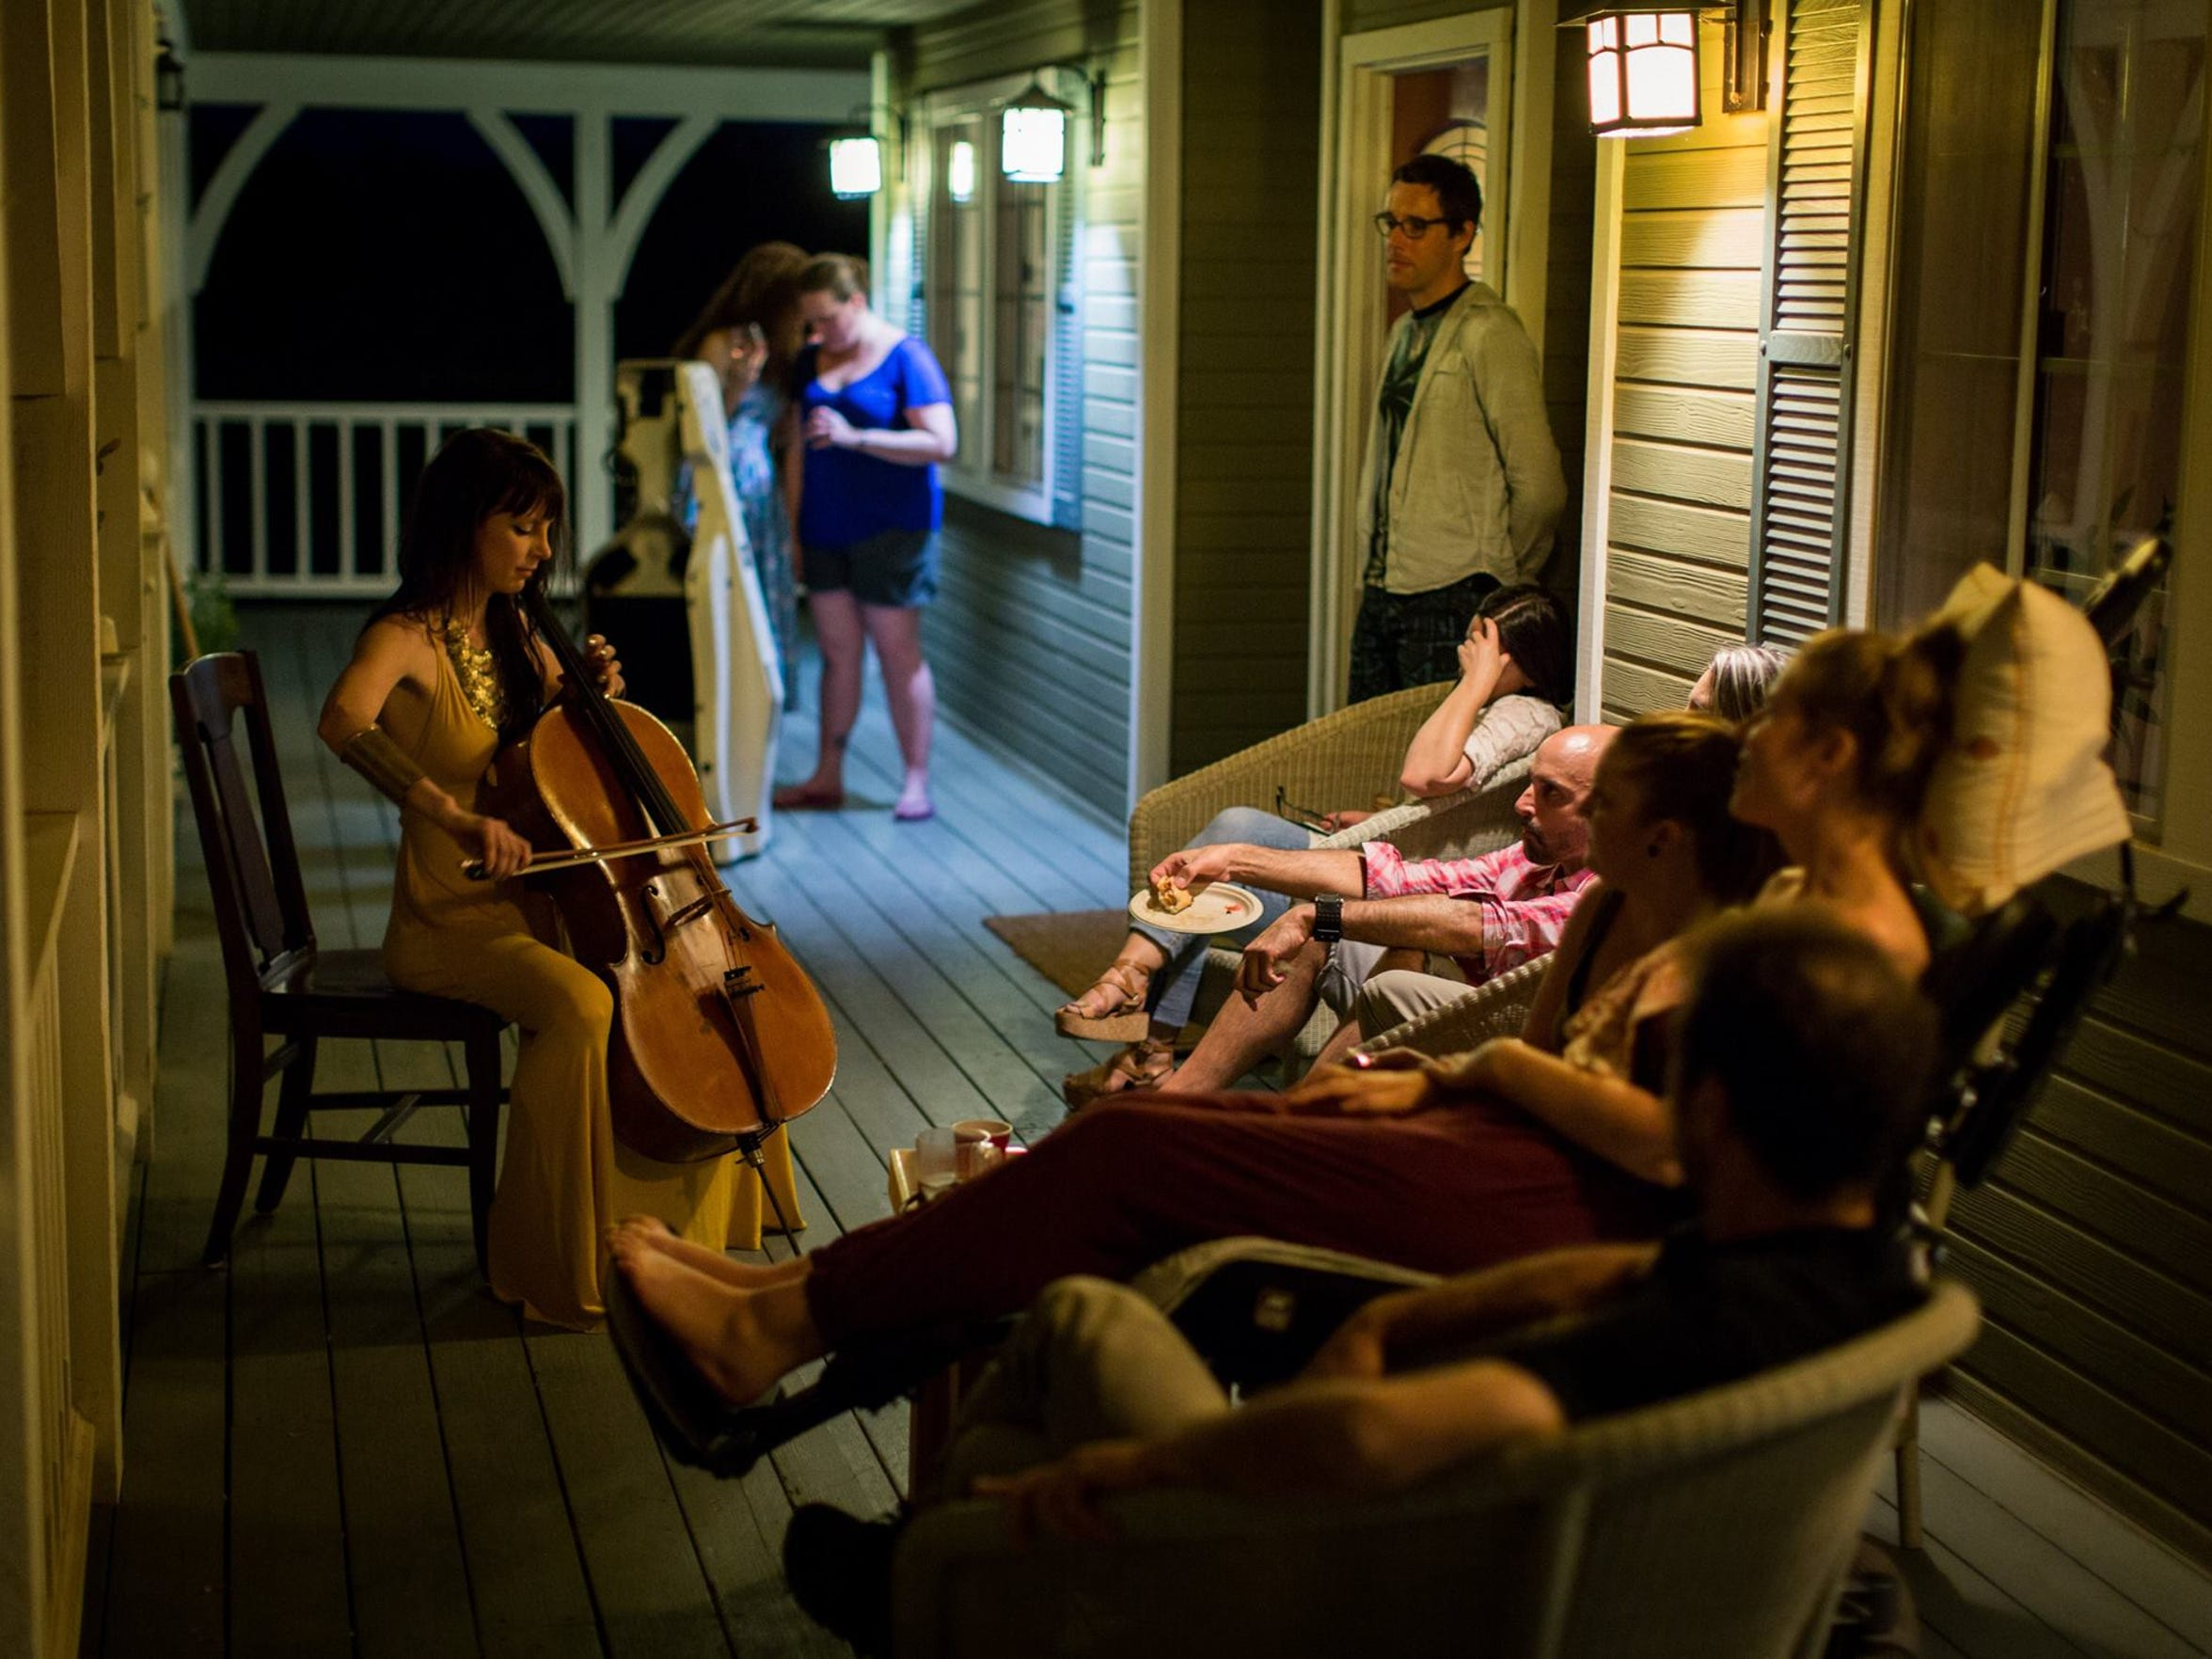 Kestrin Pantera plays the cello for her friend, Betsy Davis, who ended her life on July 24.